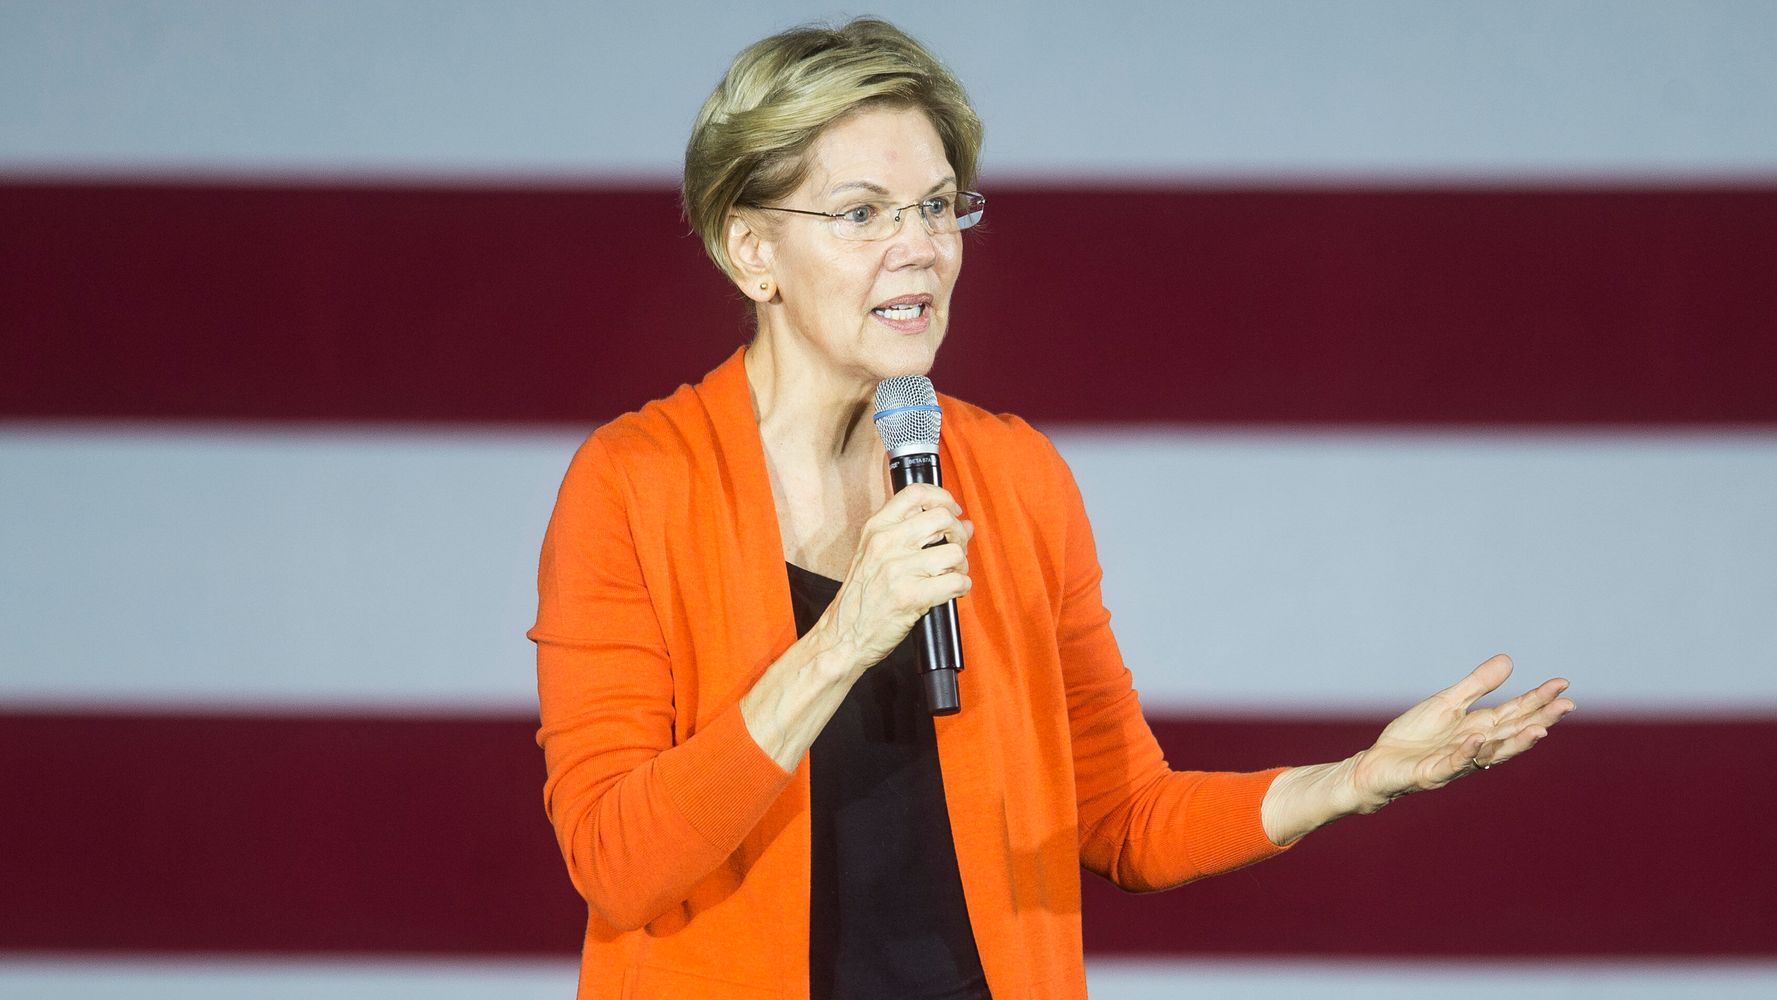 Warren To Release Plan To Pay For 'Medicare For All'